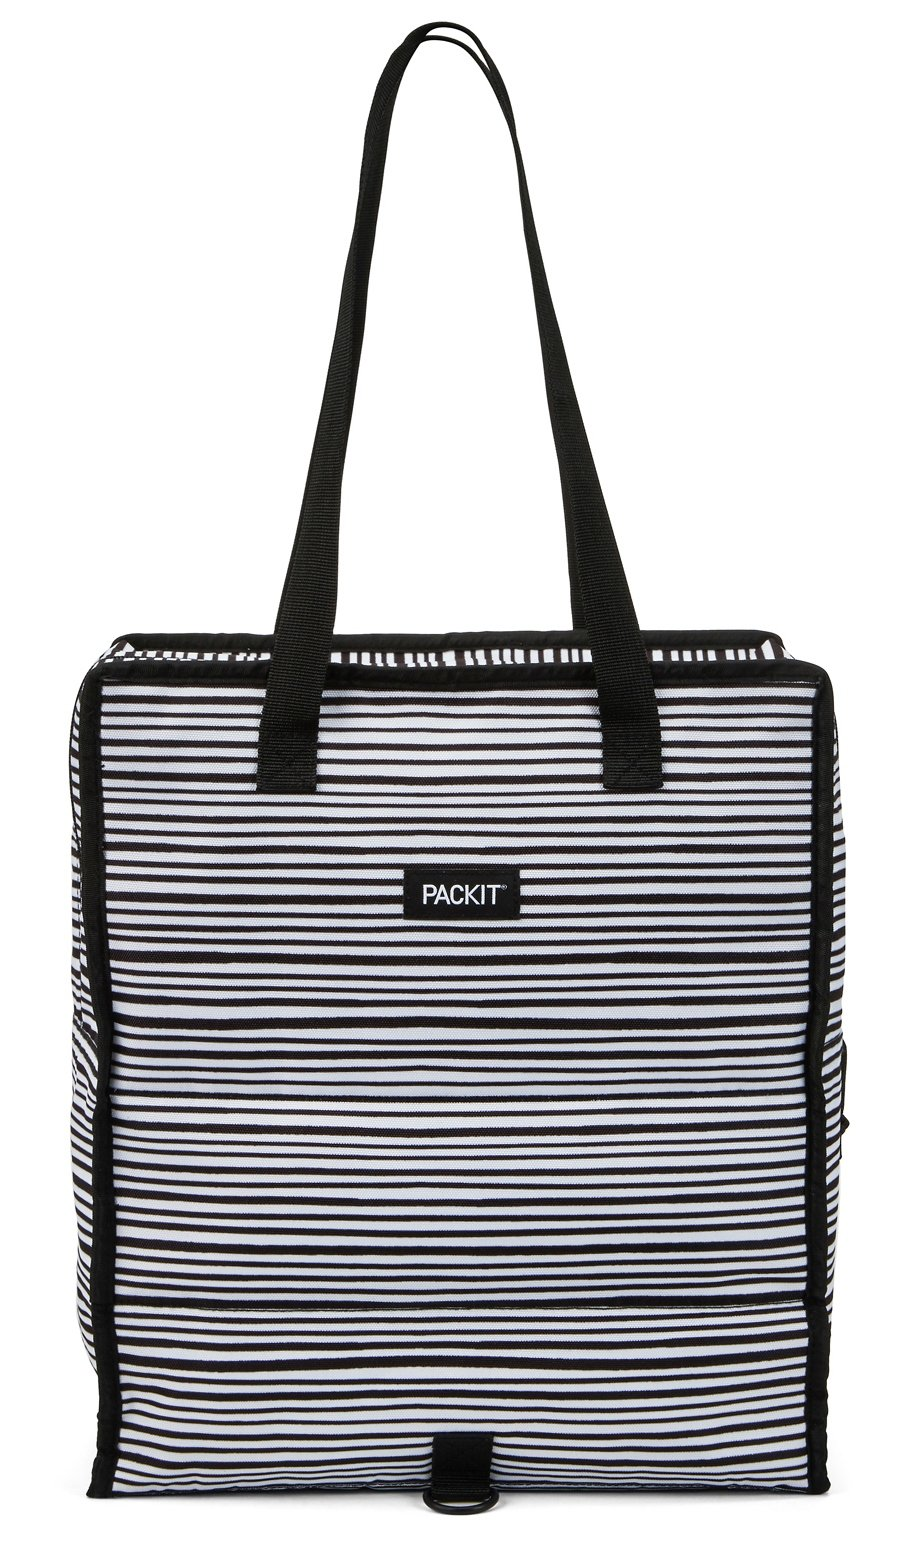 PackIt Freezable Grocery Shopping Bag with Zip Closure, Wobbly Stripes by PackIt (Image #2)